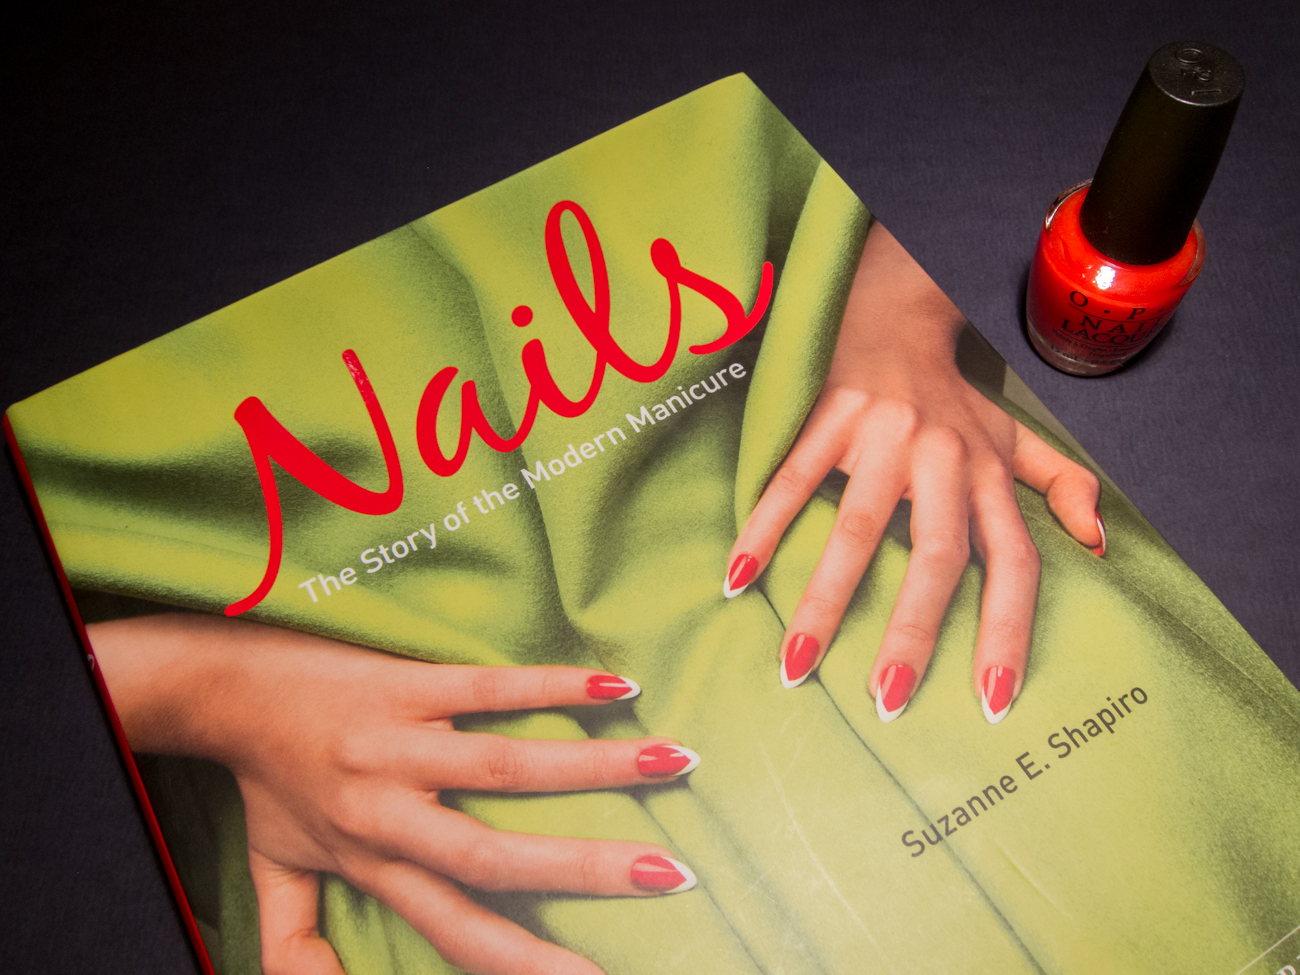 Nails The Story Of The Modern Manicure Chalkboard Nails Nail